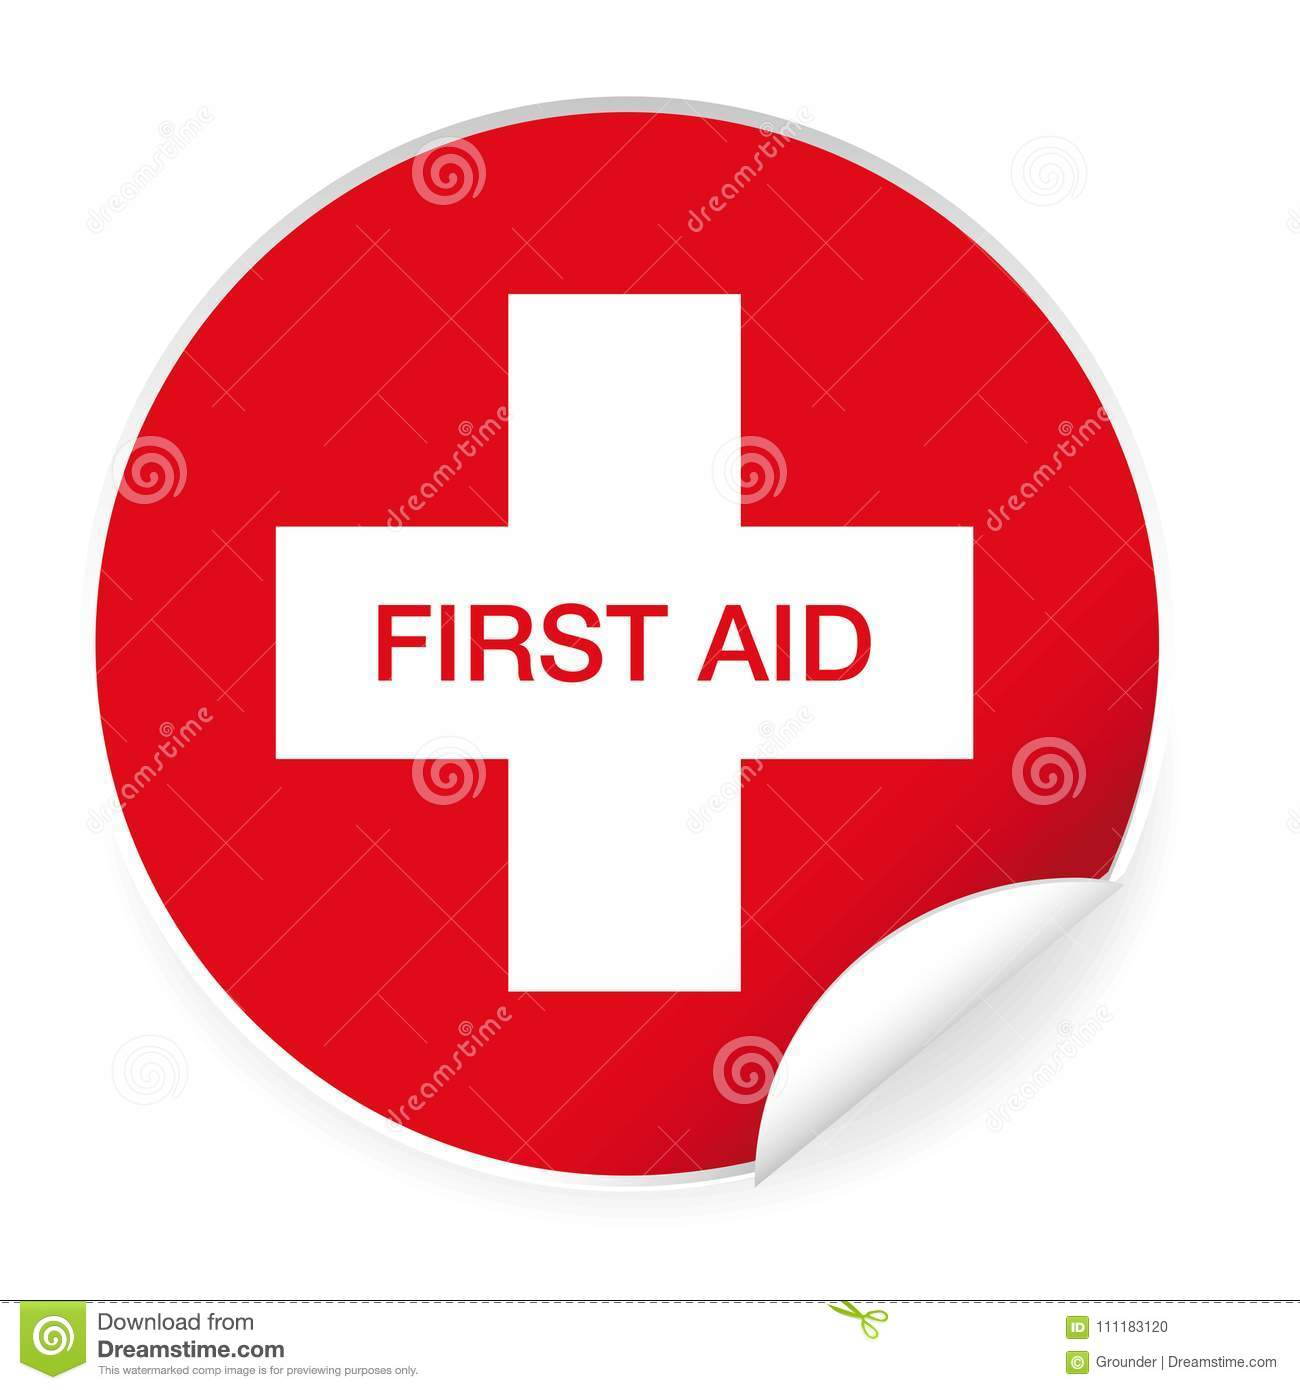 STICKER First AID sign ADESIVO segnaletica pronto soccorso 120x120 mm